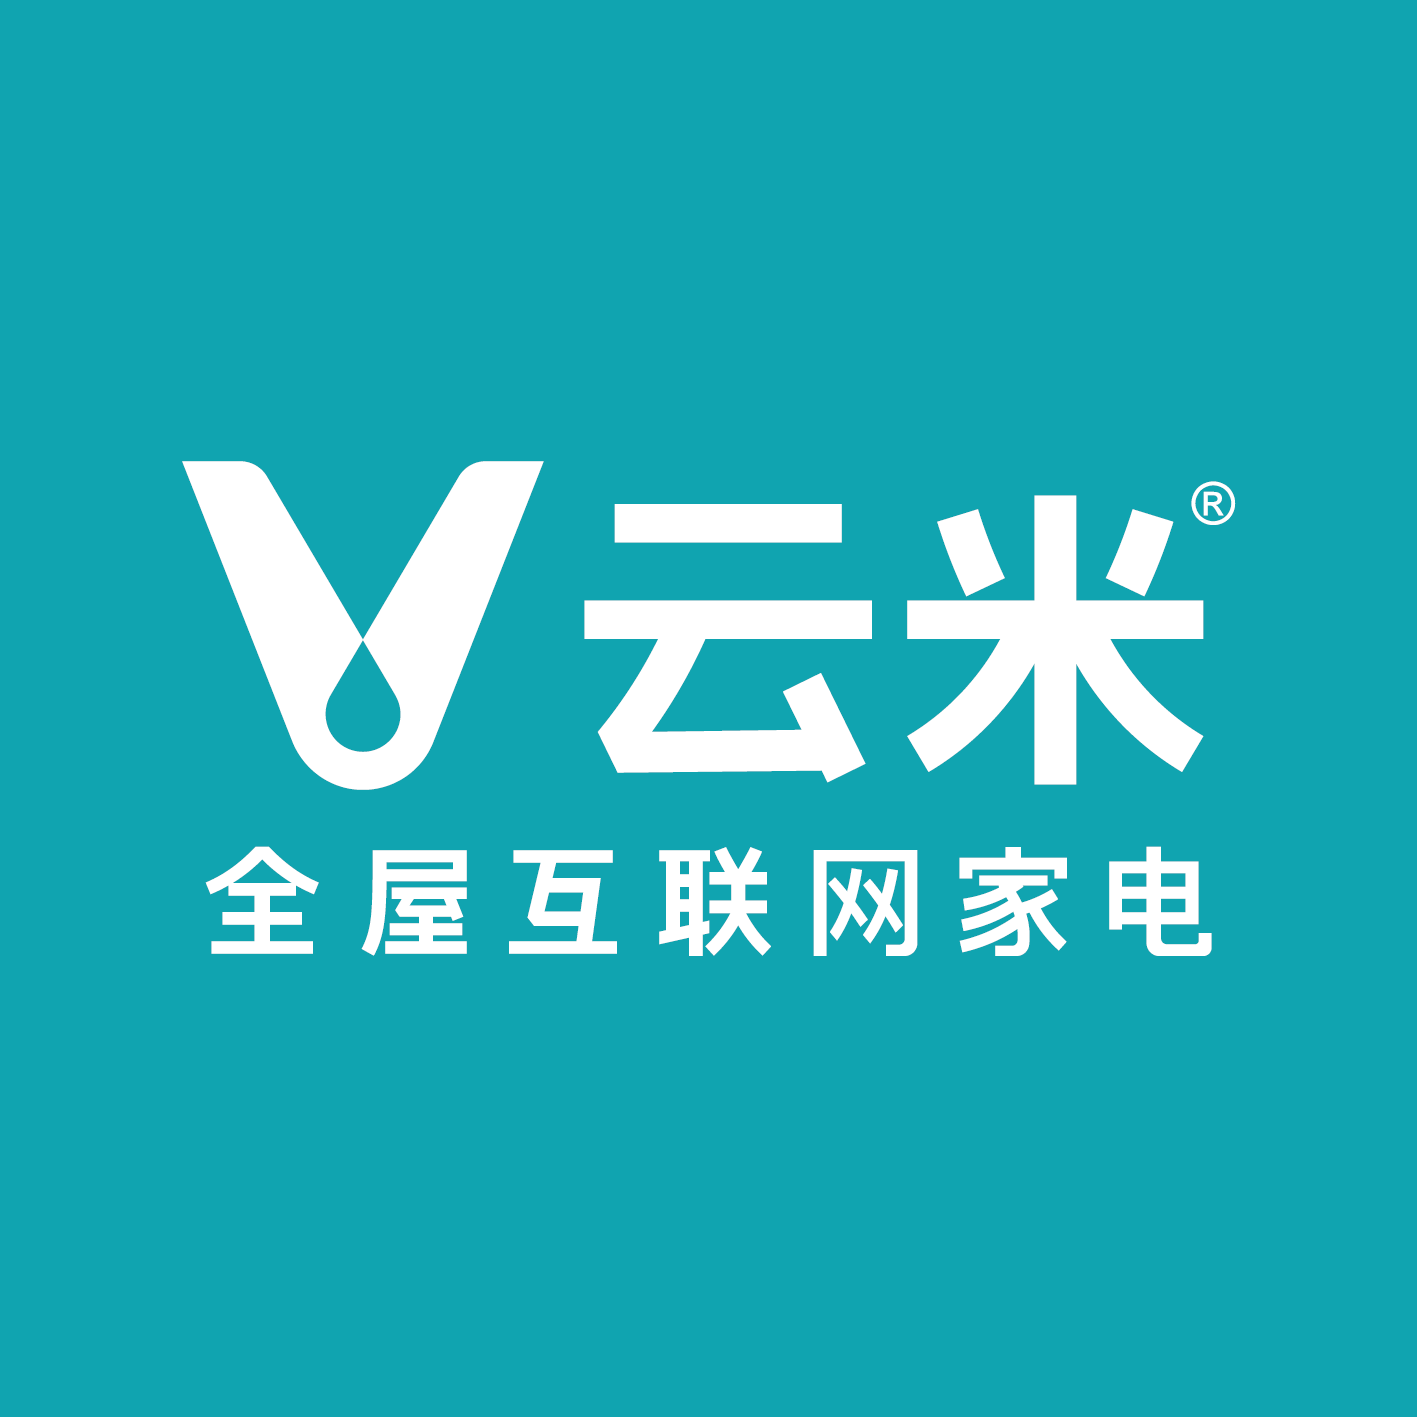 Yunmi Hulian Technology (Guangdong) Co., Ltd.